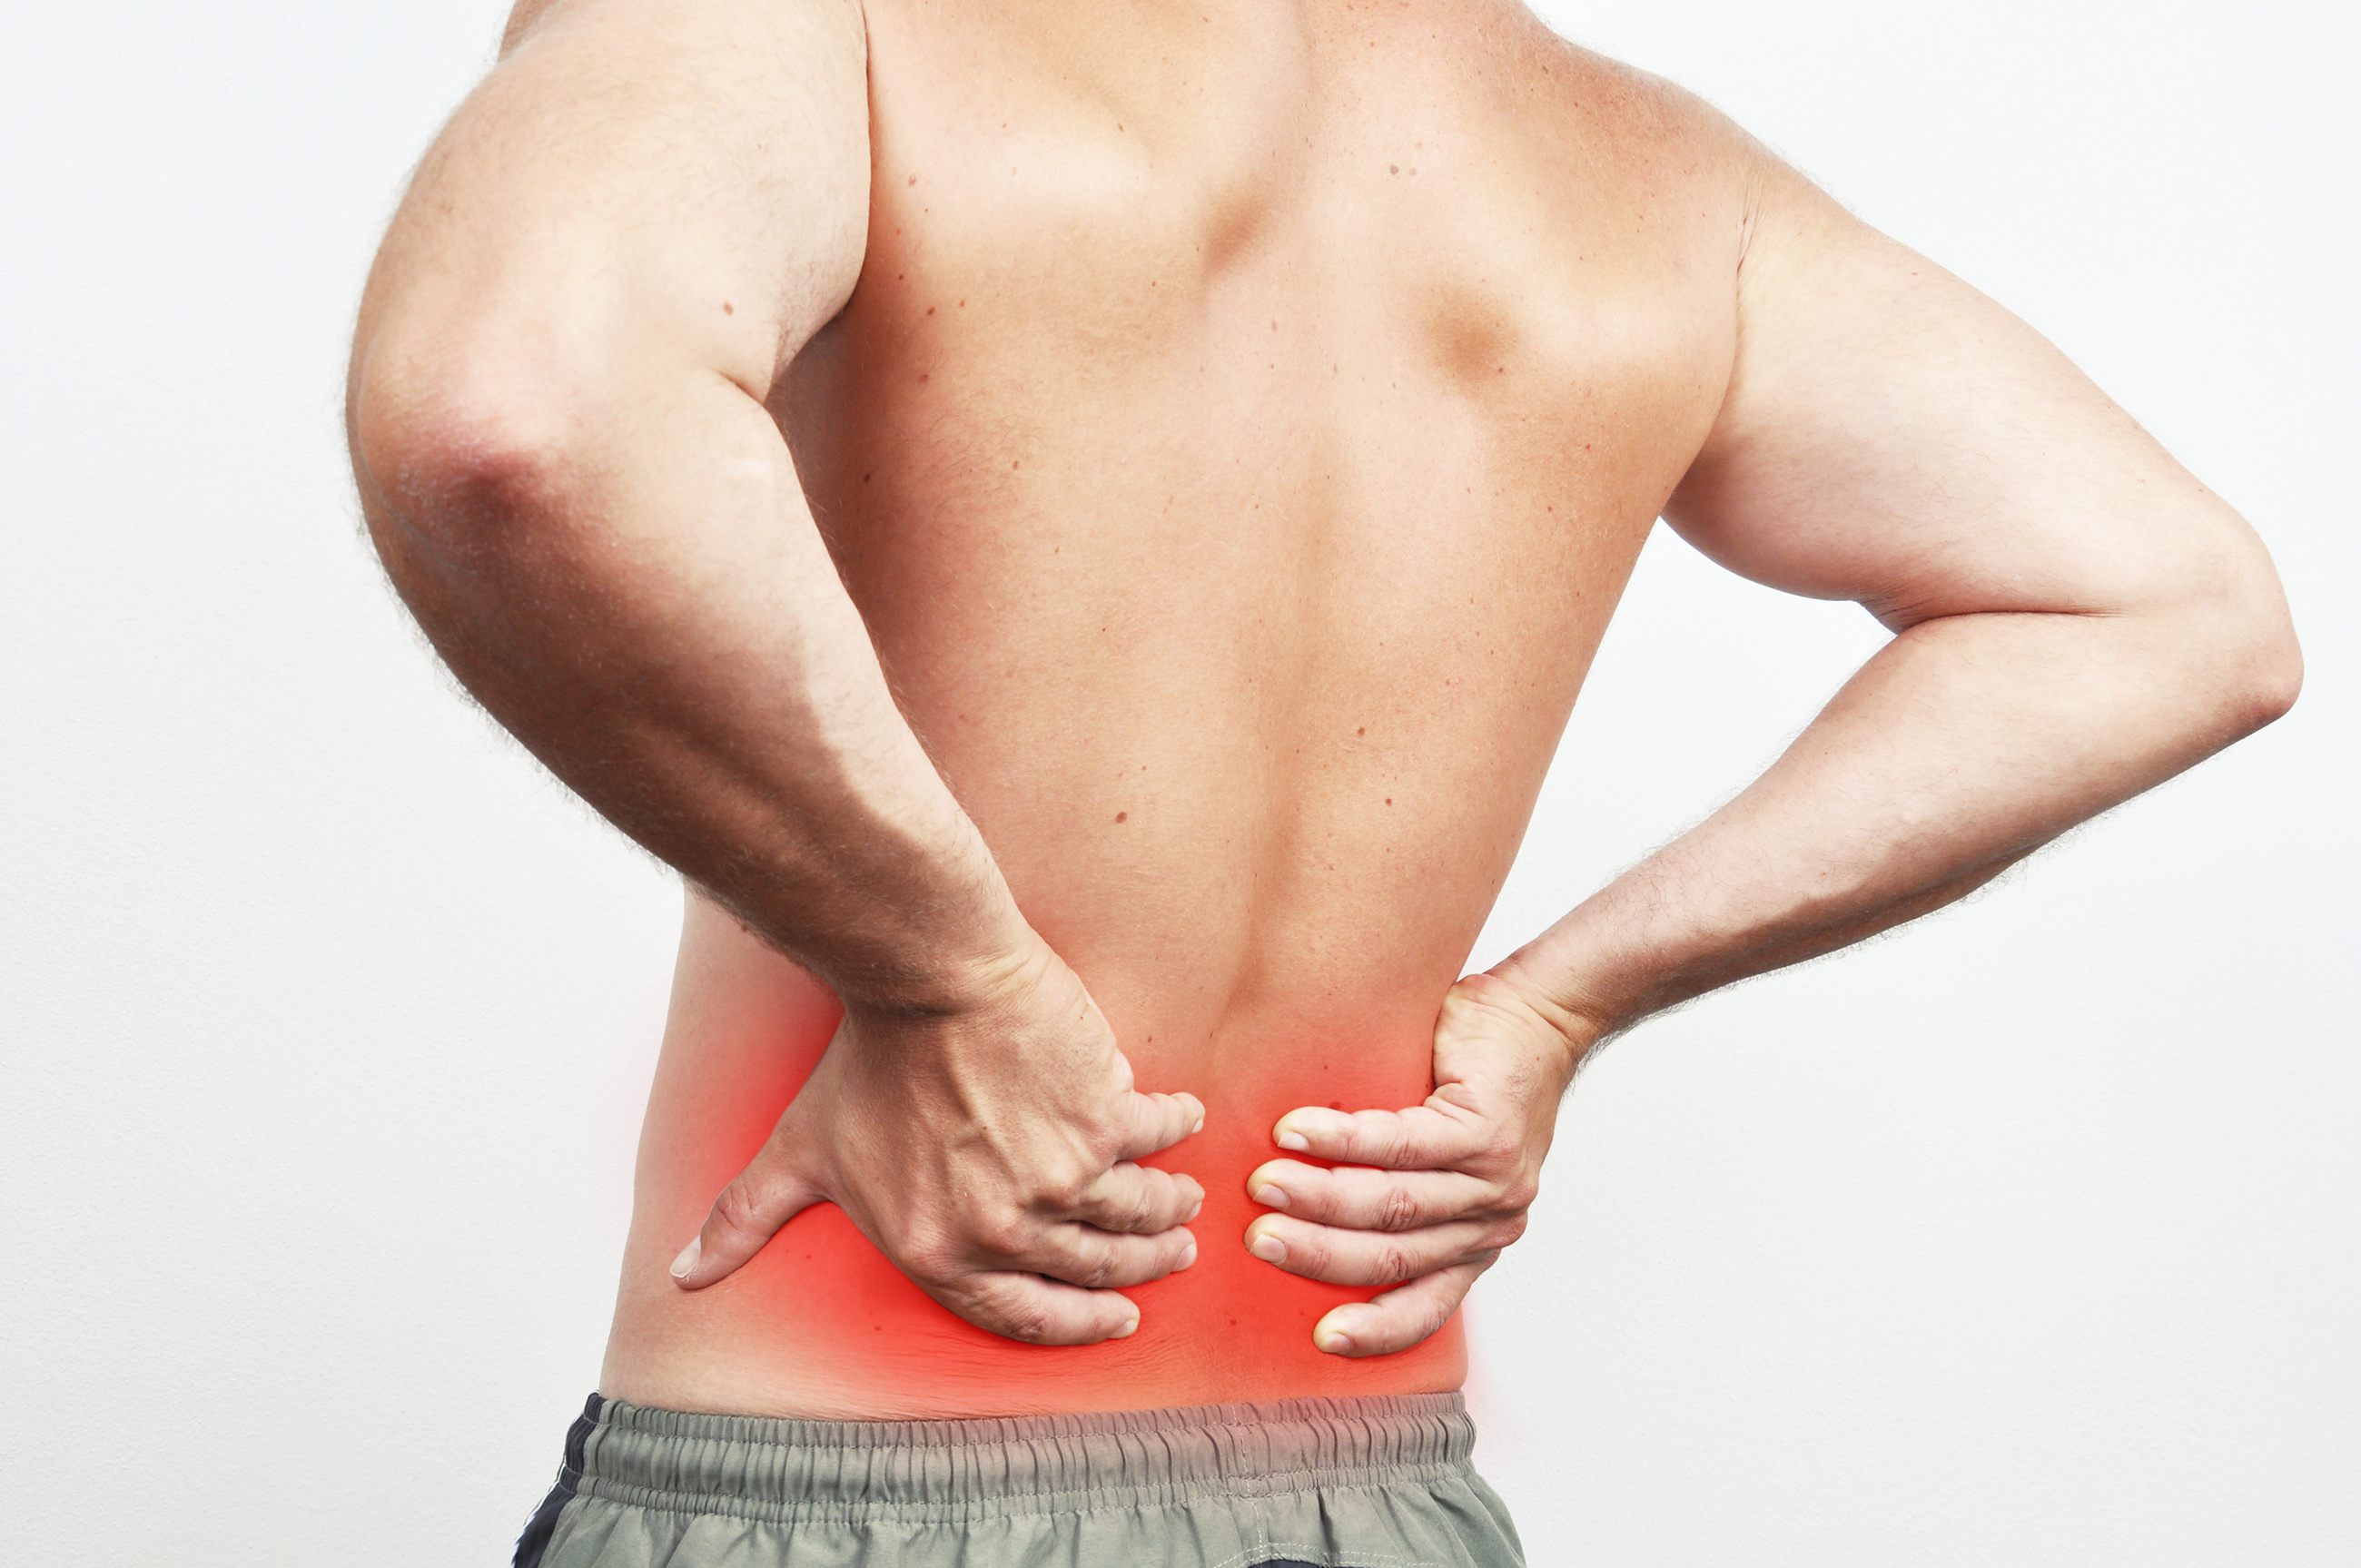 Men's health – A fix for lower back pain